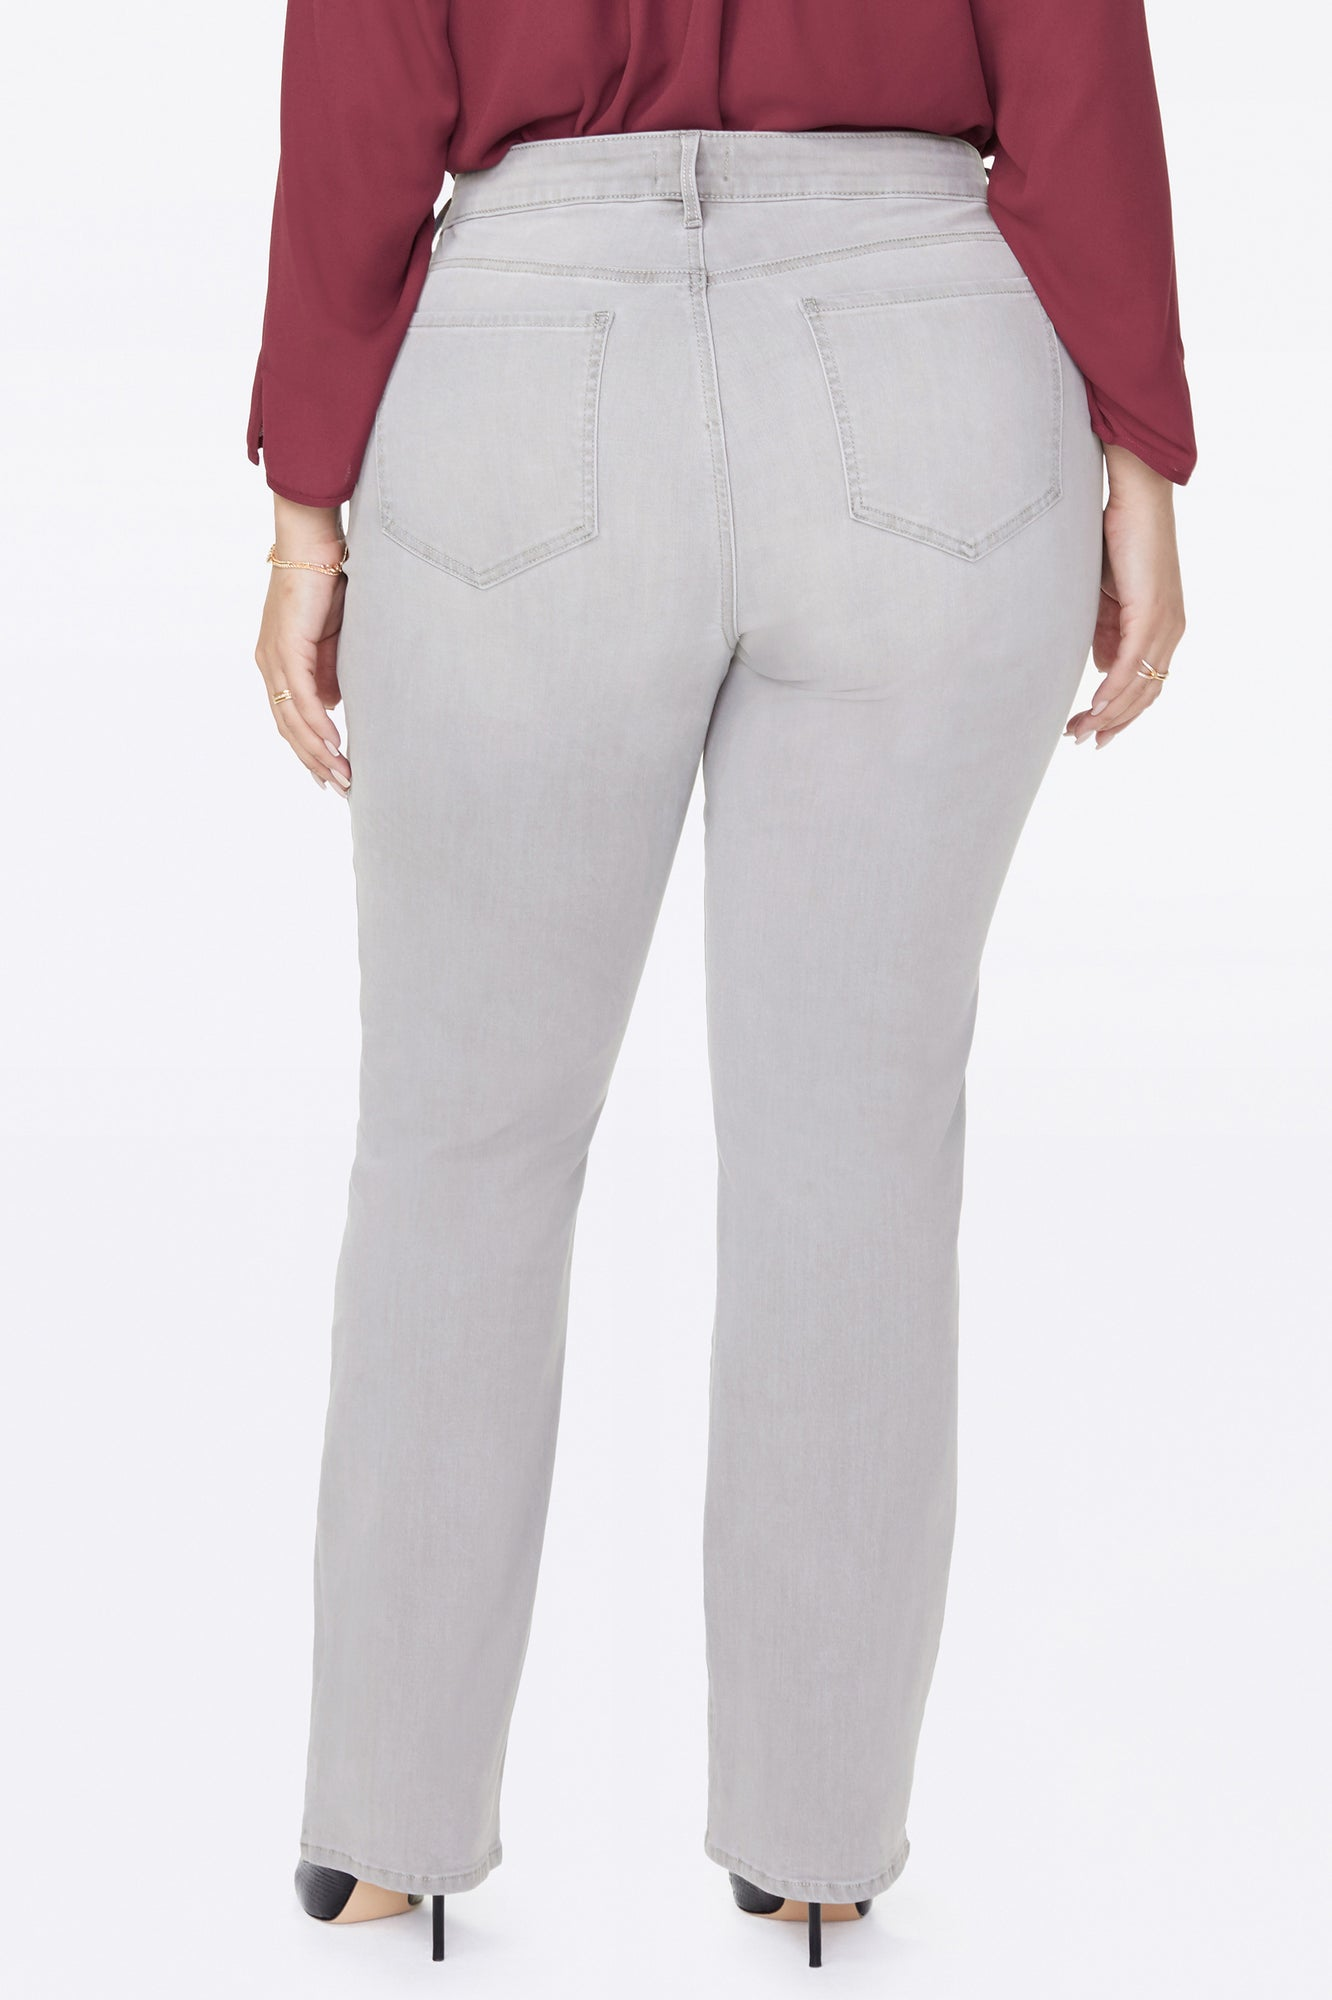 Marilyn Straight Jeans In Plus Size - GALE